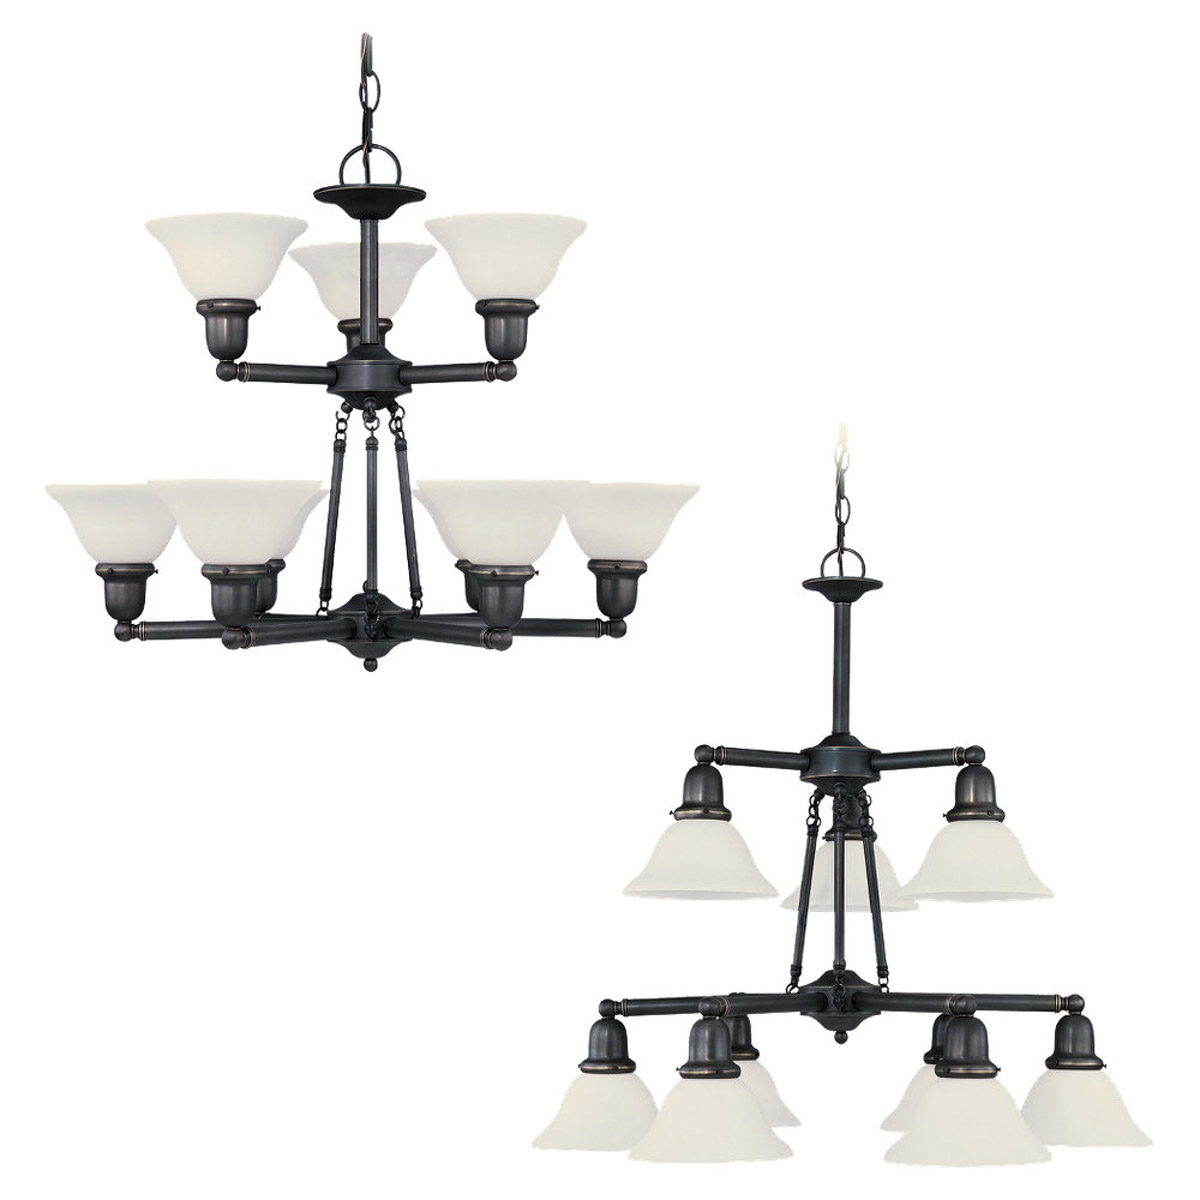 Sea Gull Lighting Sussex 9 Light Chandelier in Heirloom Bronze 39063BLE-782